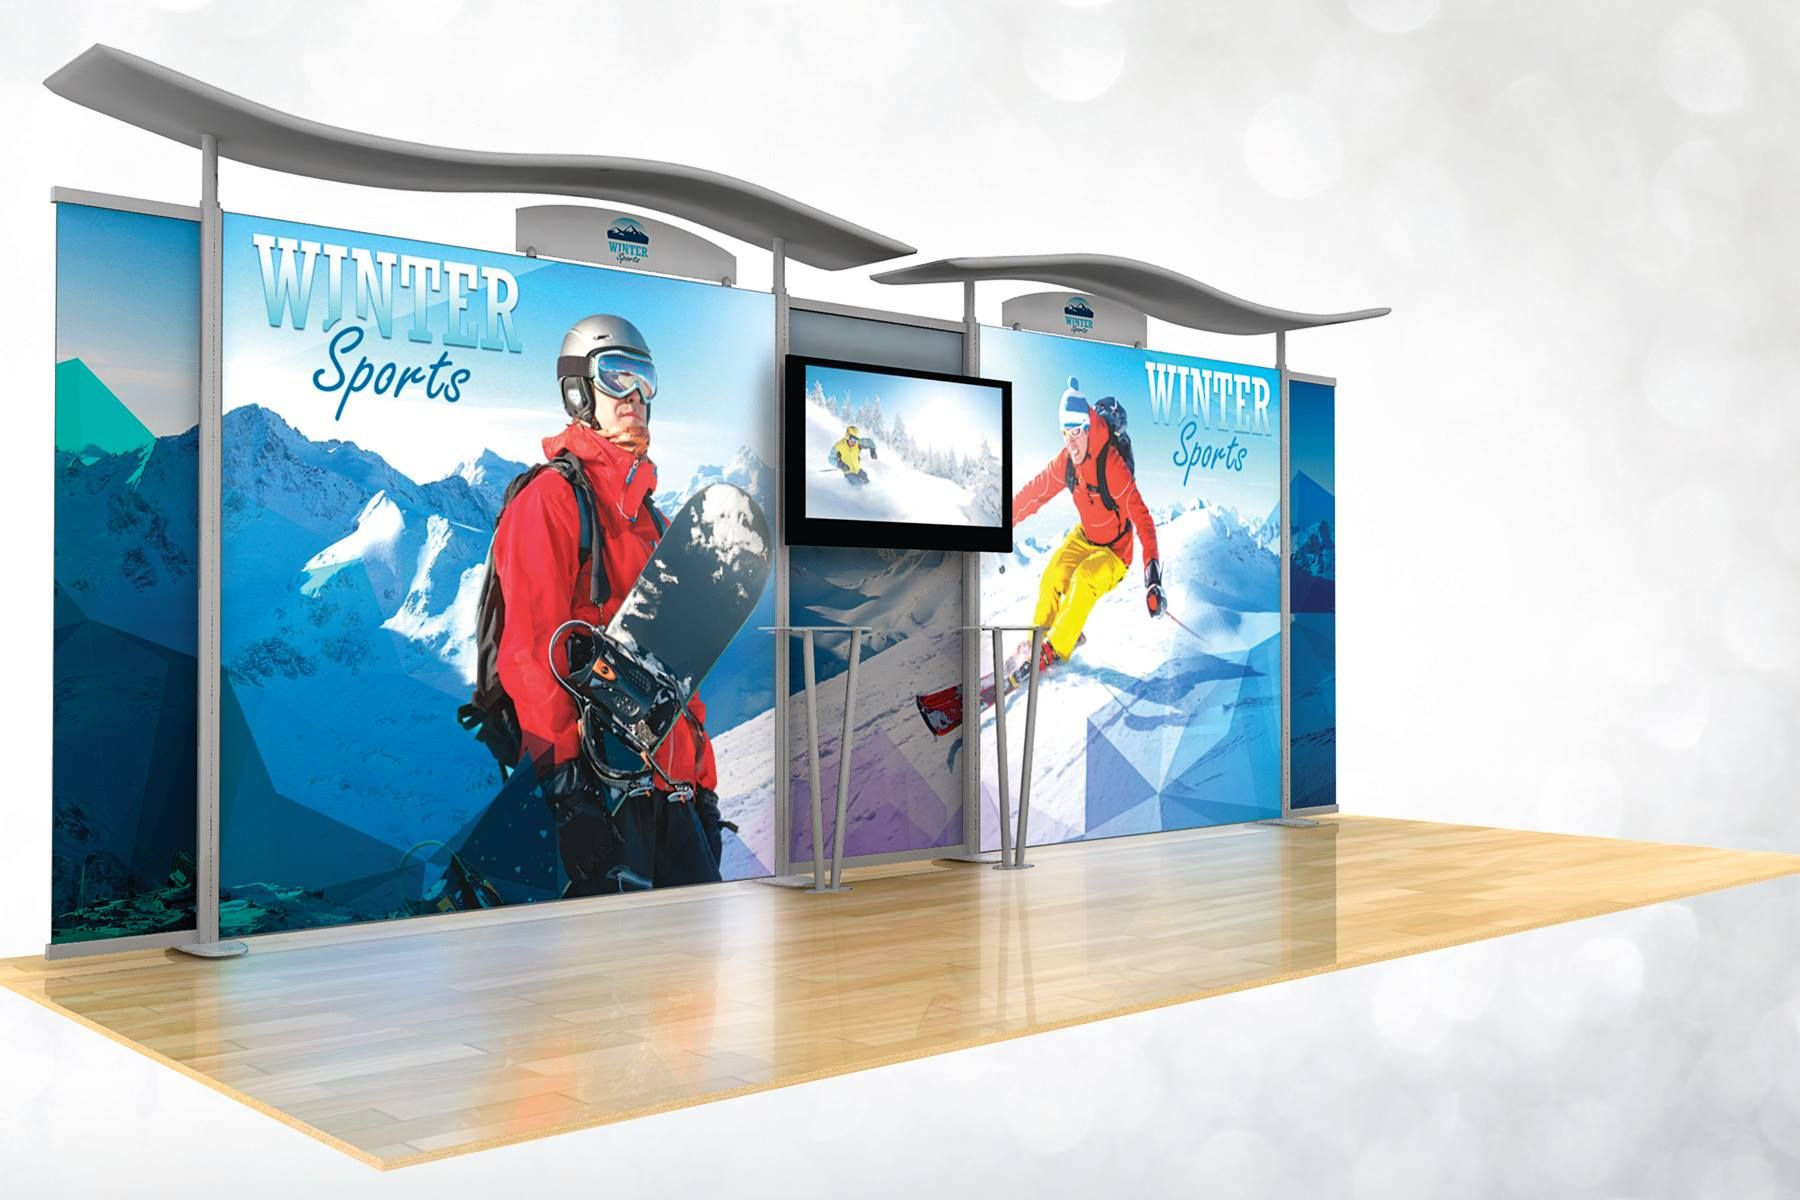 10 X 20 Backlit Modular Trade Show Display Featuring 2 LED Graphic Light